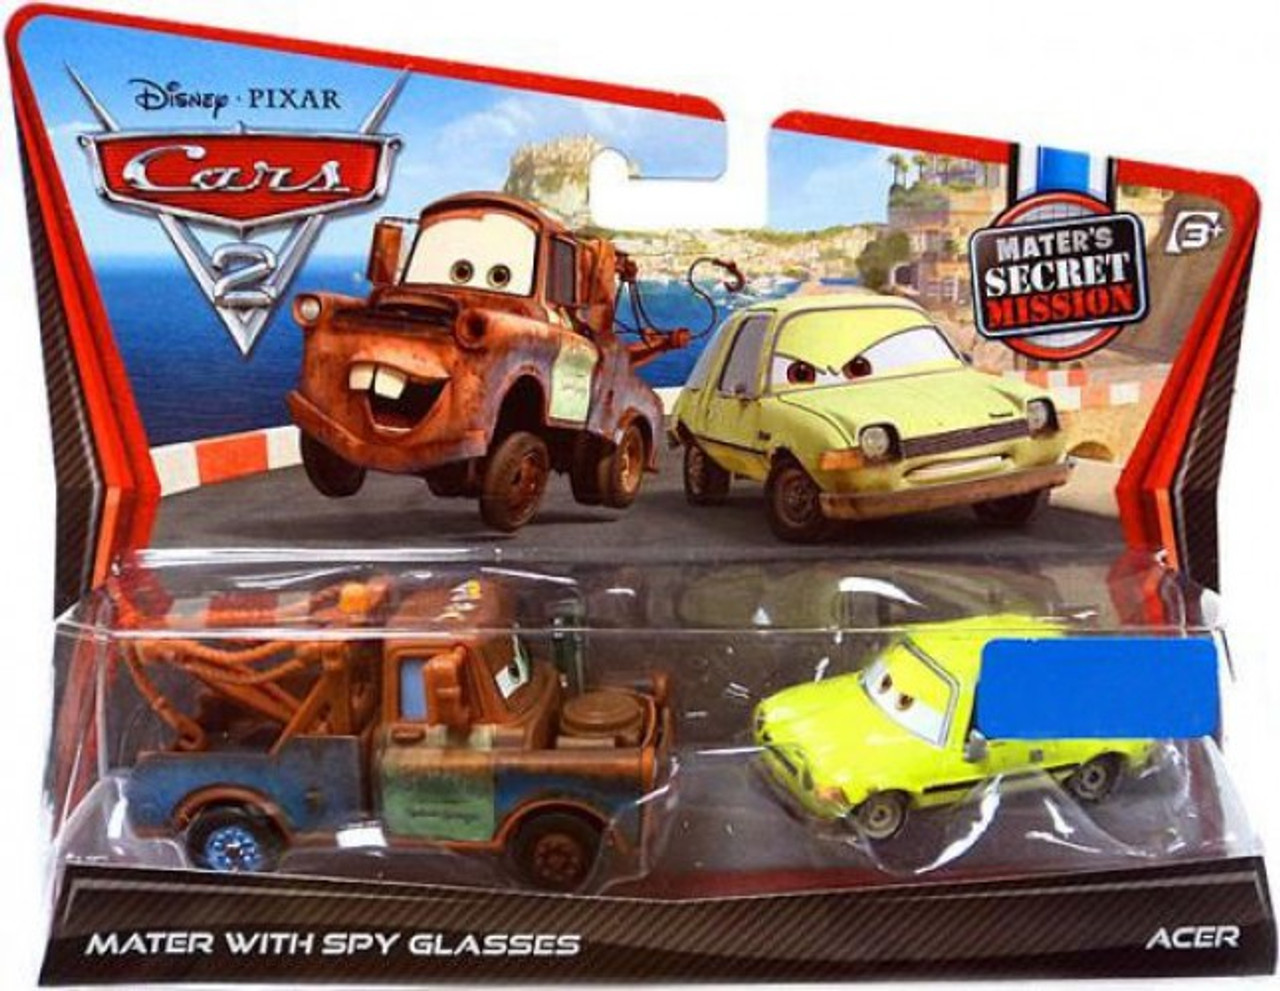 Disney Pixar Cars Cars 2 Mater With Spy Glasses Acer Exclusive 155